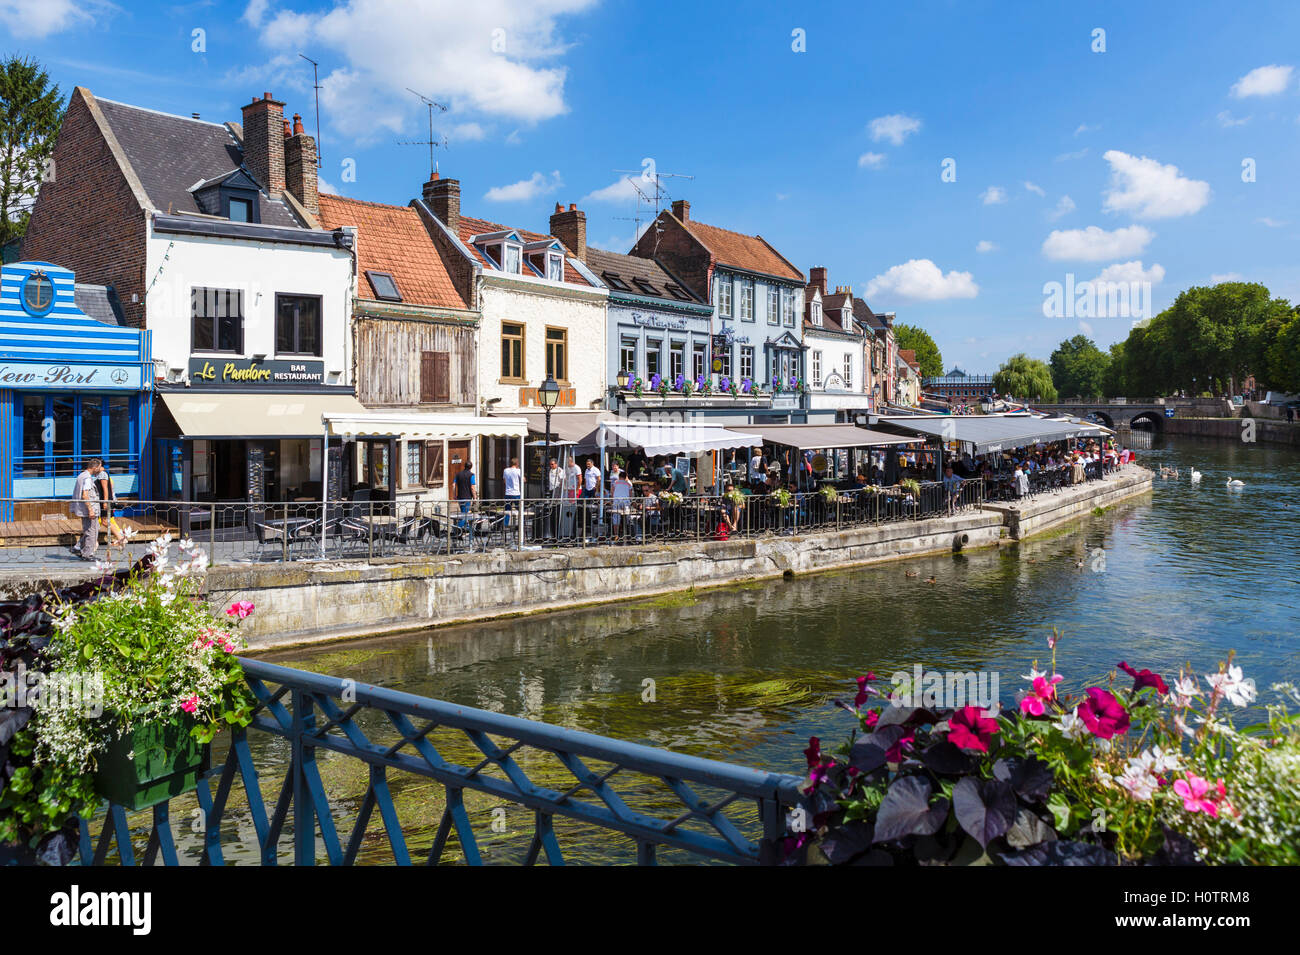 The River Somme and Quai Bleu in the Quartier St-Leu, Amiens, Picardy, France Stock Photo